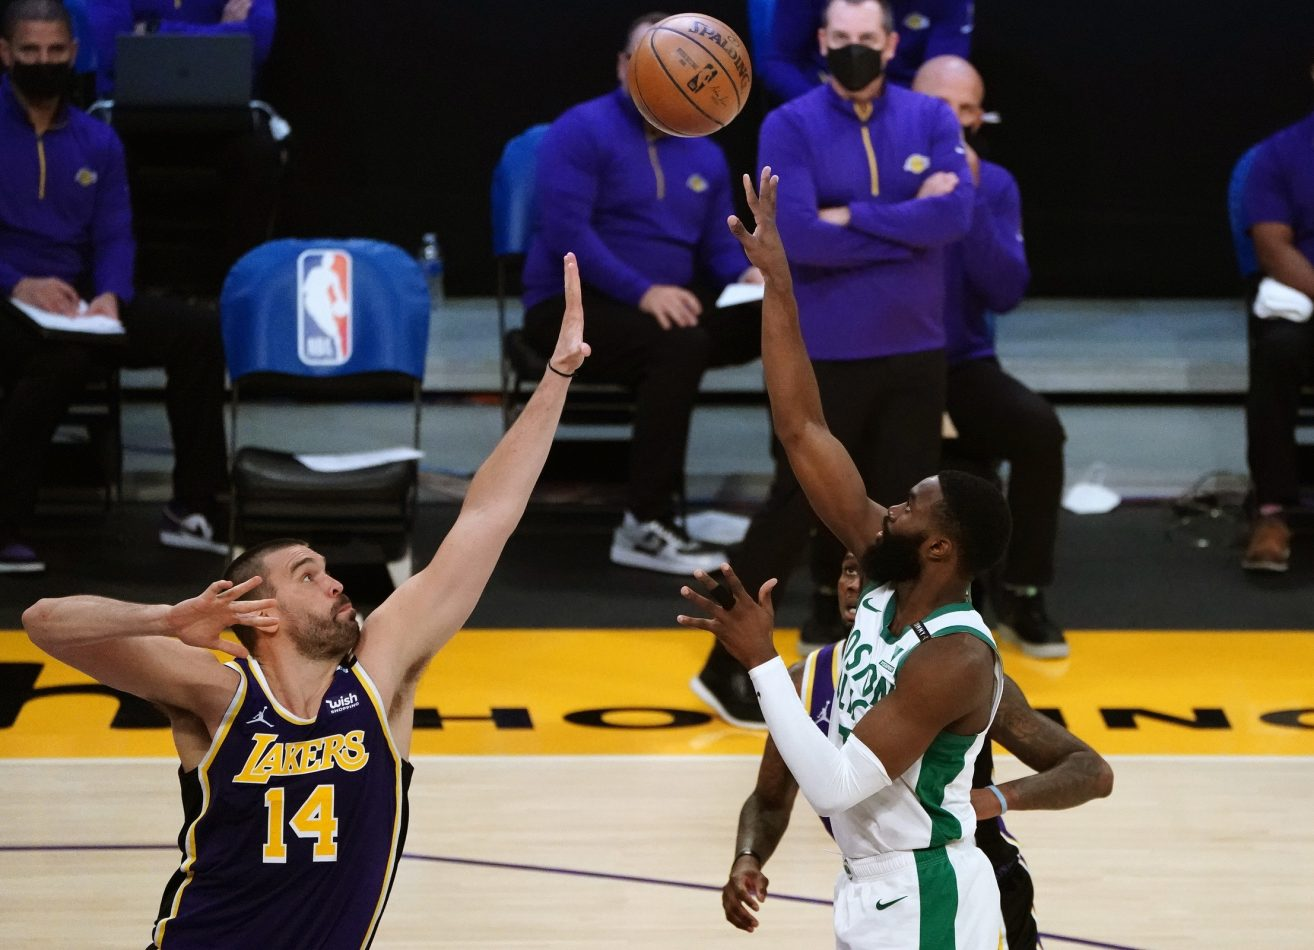 5 rational thoughts about the Celtics beating the Lakers